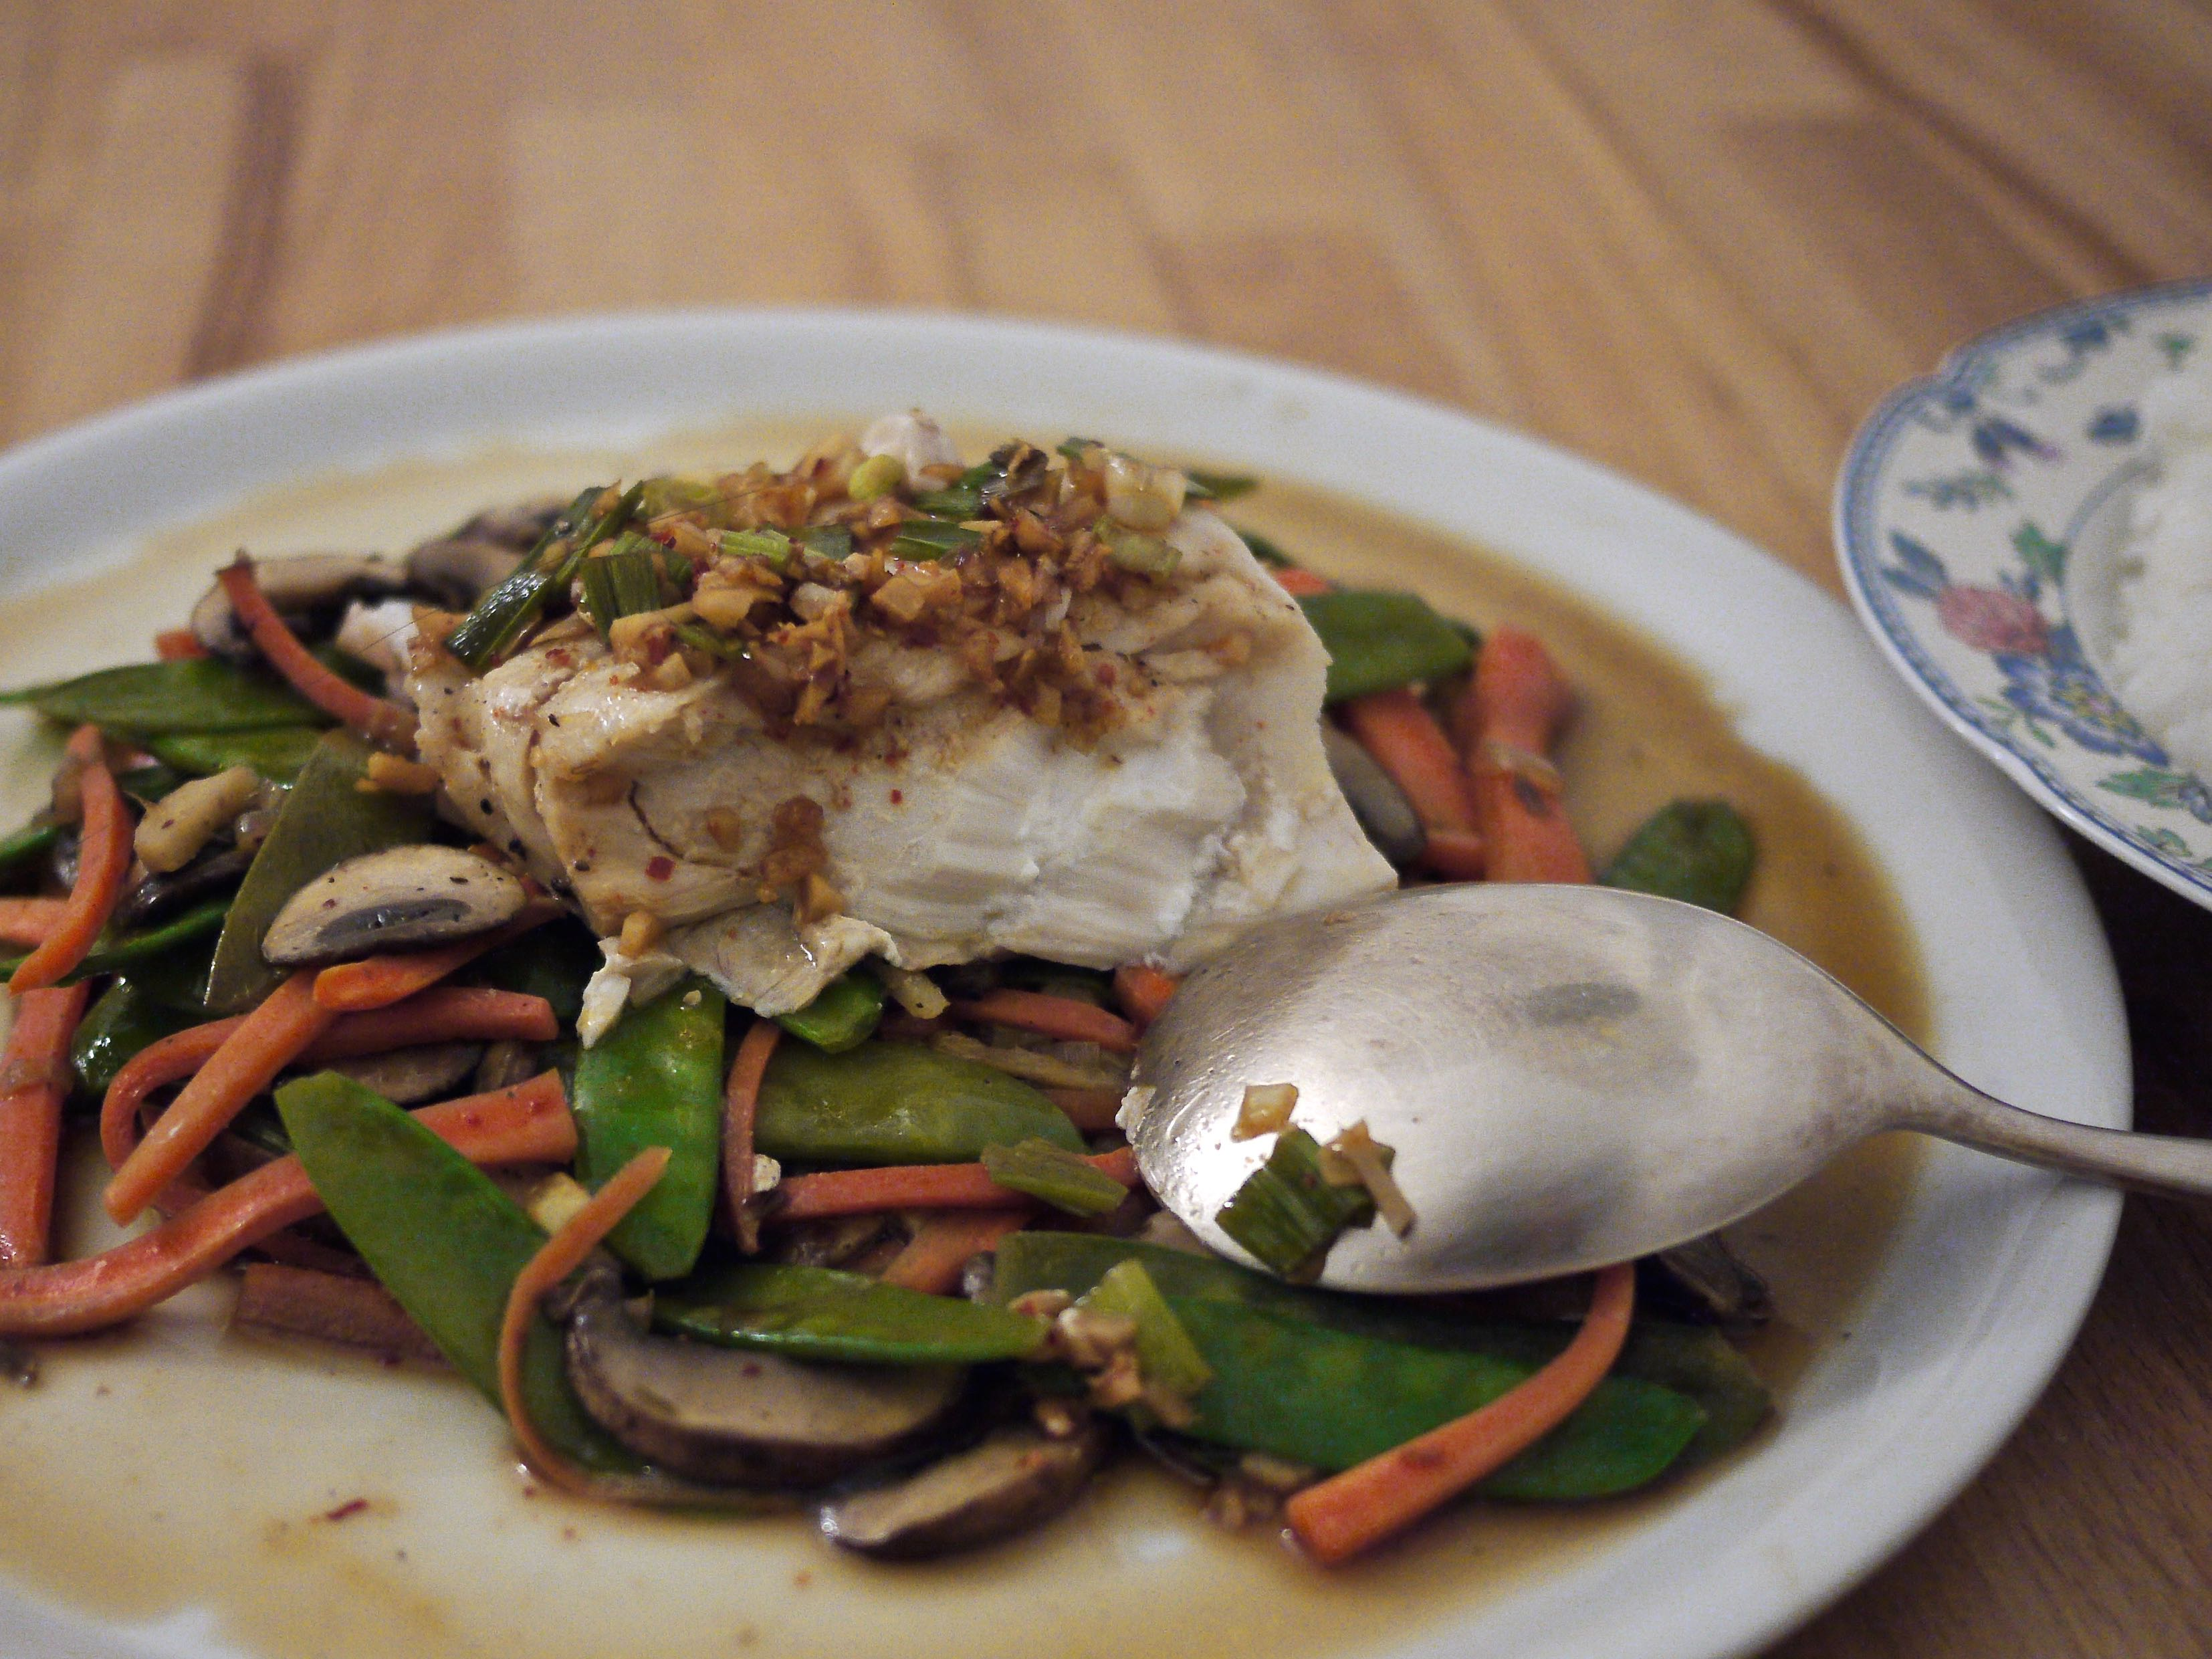 Chinese style steamed fish ausplendor for Chinese steamed fish recipe